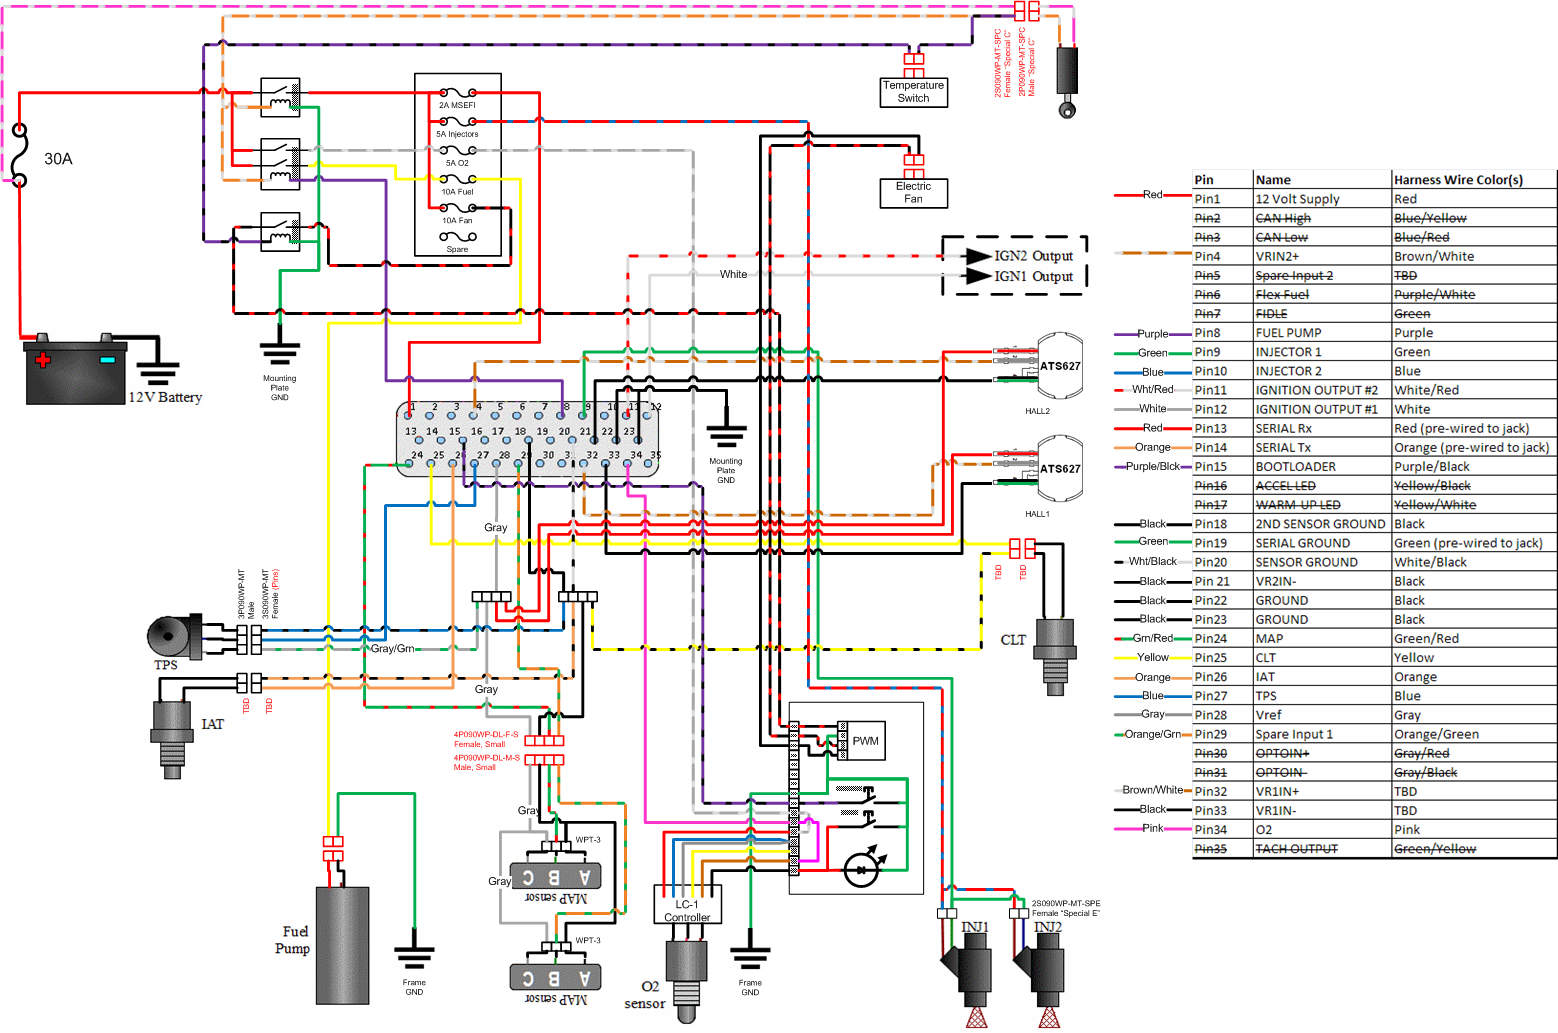 Wiring Diagram Yamaha Vega R Bj40 01 R1 Amp Engine